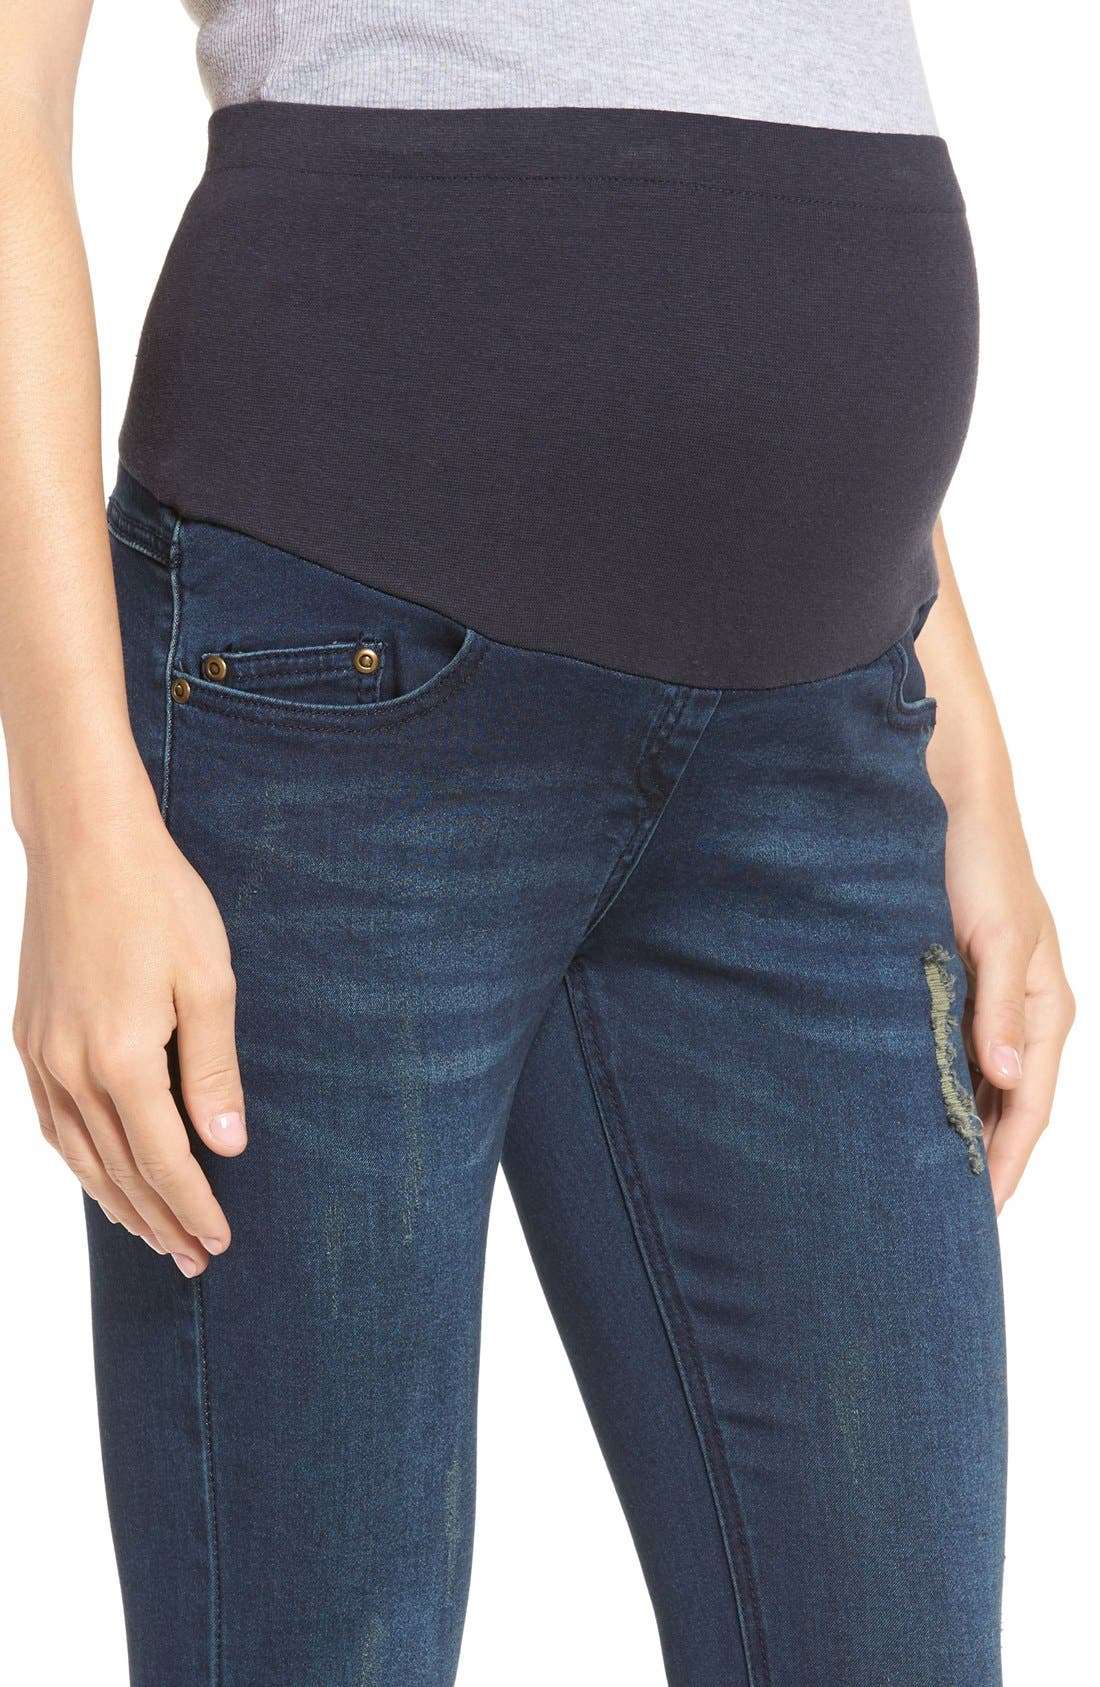 Distressed Skinny Maternity Jeans,                             Alternate thumbnail 5, color,                             400